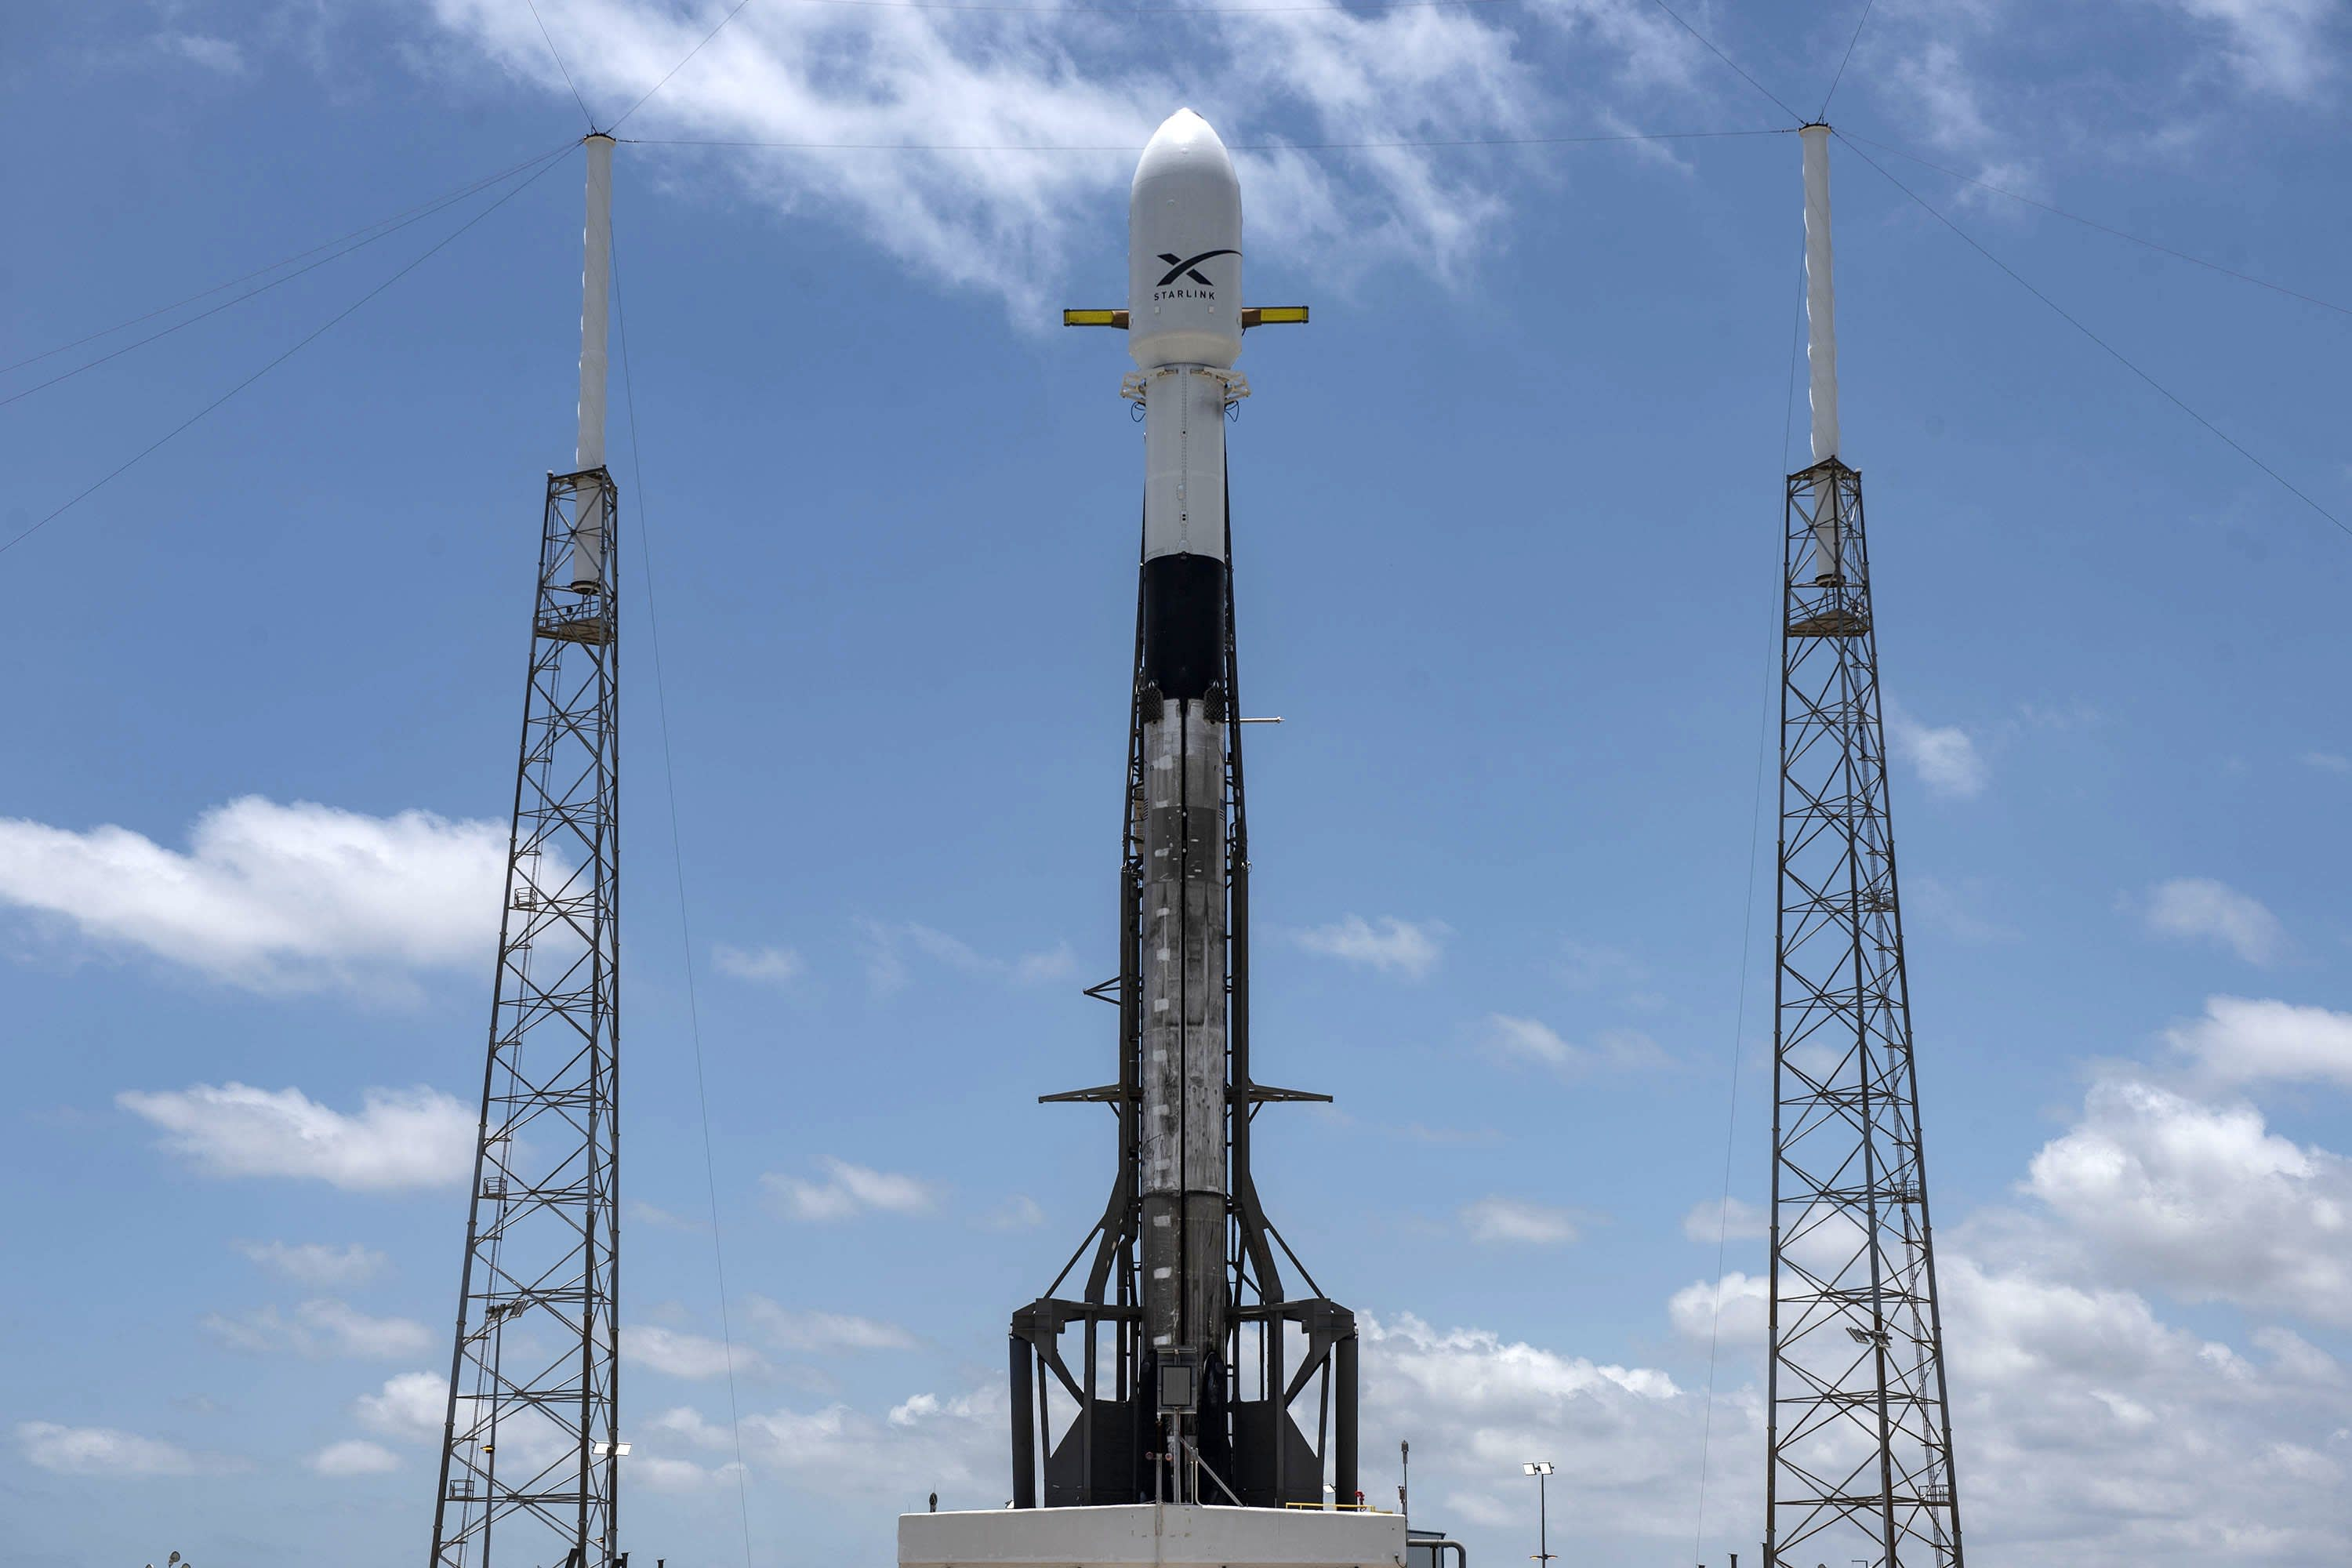 A SpaceX Falcon 9 rocket loaded with 60 Starlink satellites stands on the company's launchpad in Florida.